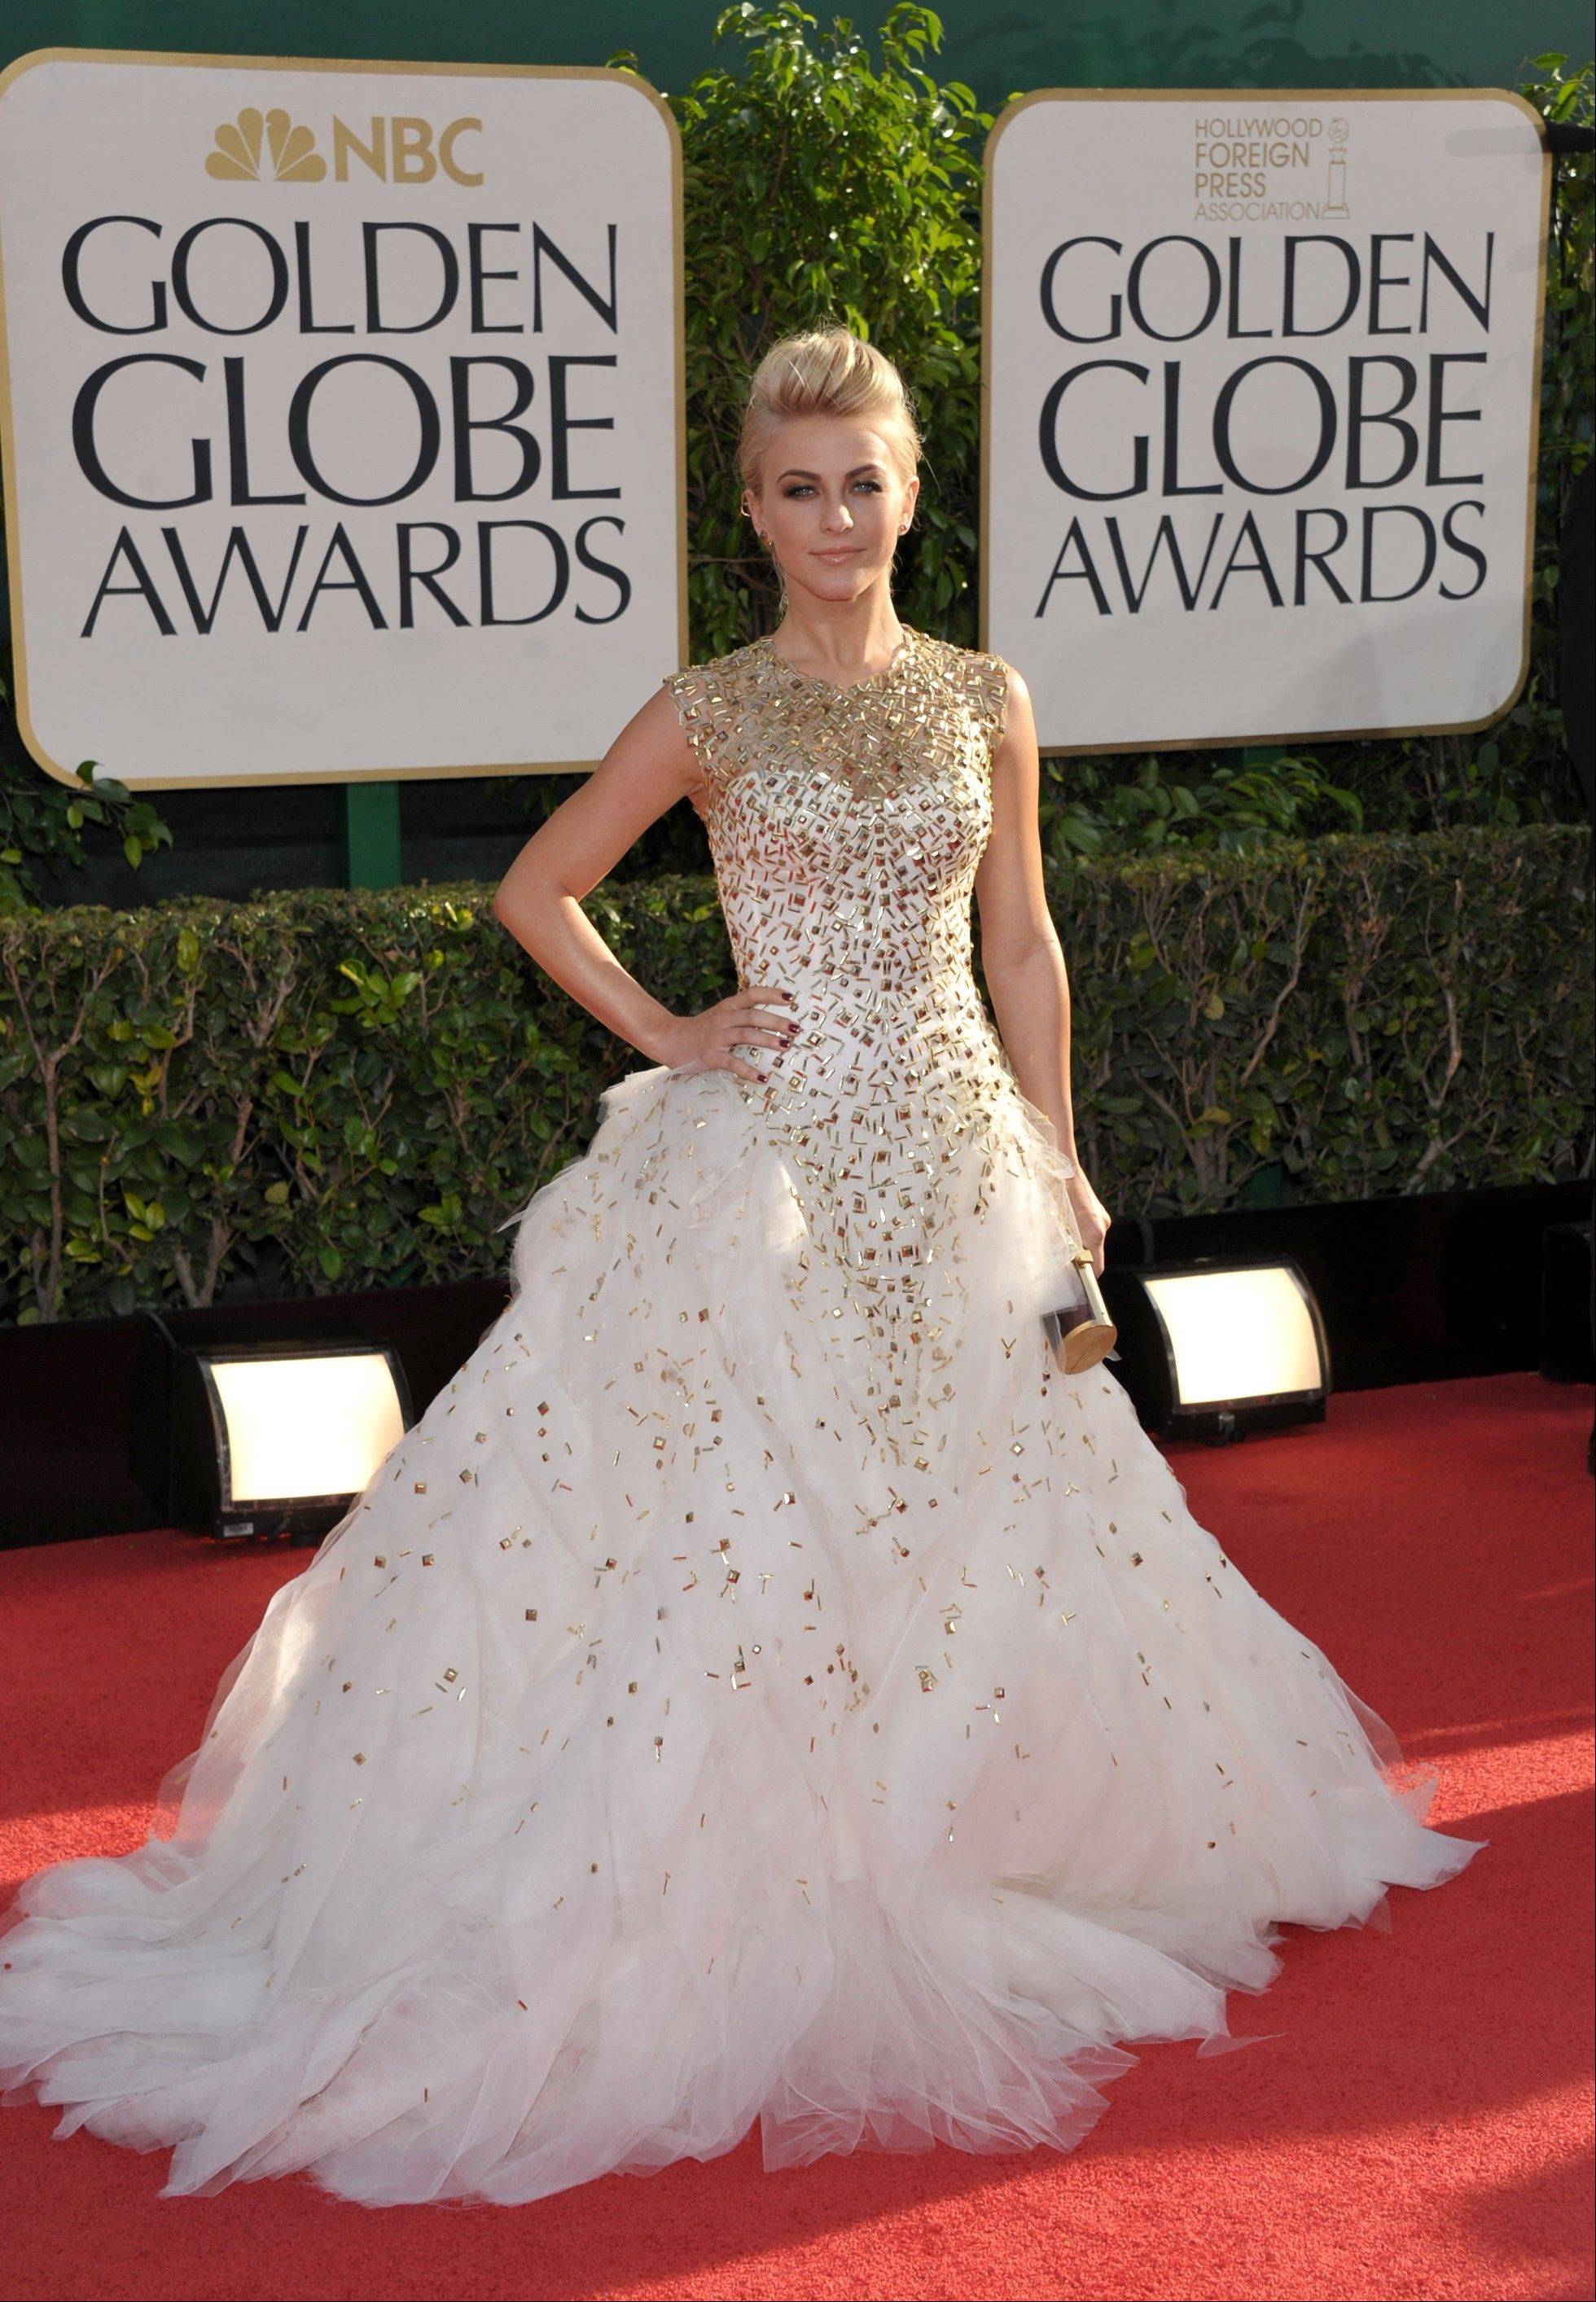 Julianne Hough arrives at the 70th Annual Golden Globe Awards at the Beverly Hilton Hotel on Sunday Jan. 13, 2013, in Beverly Hills, Calif.